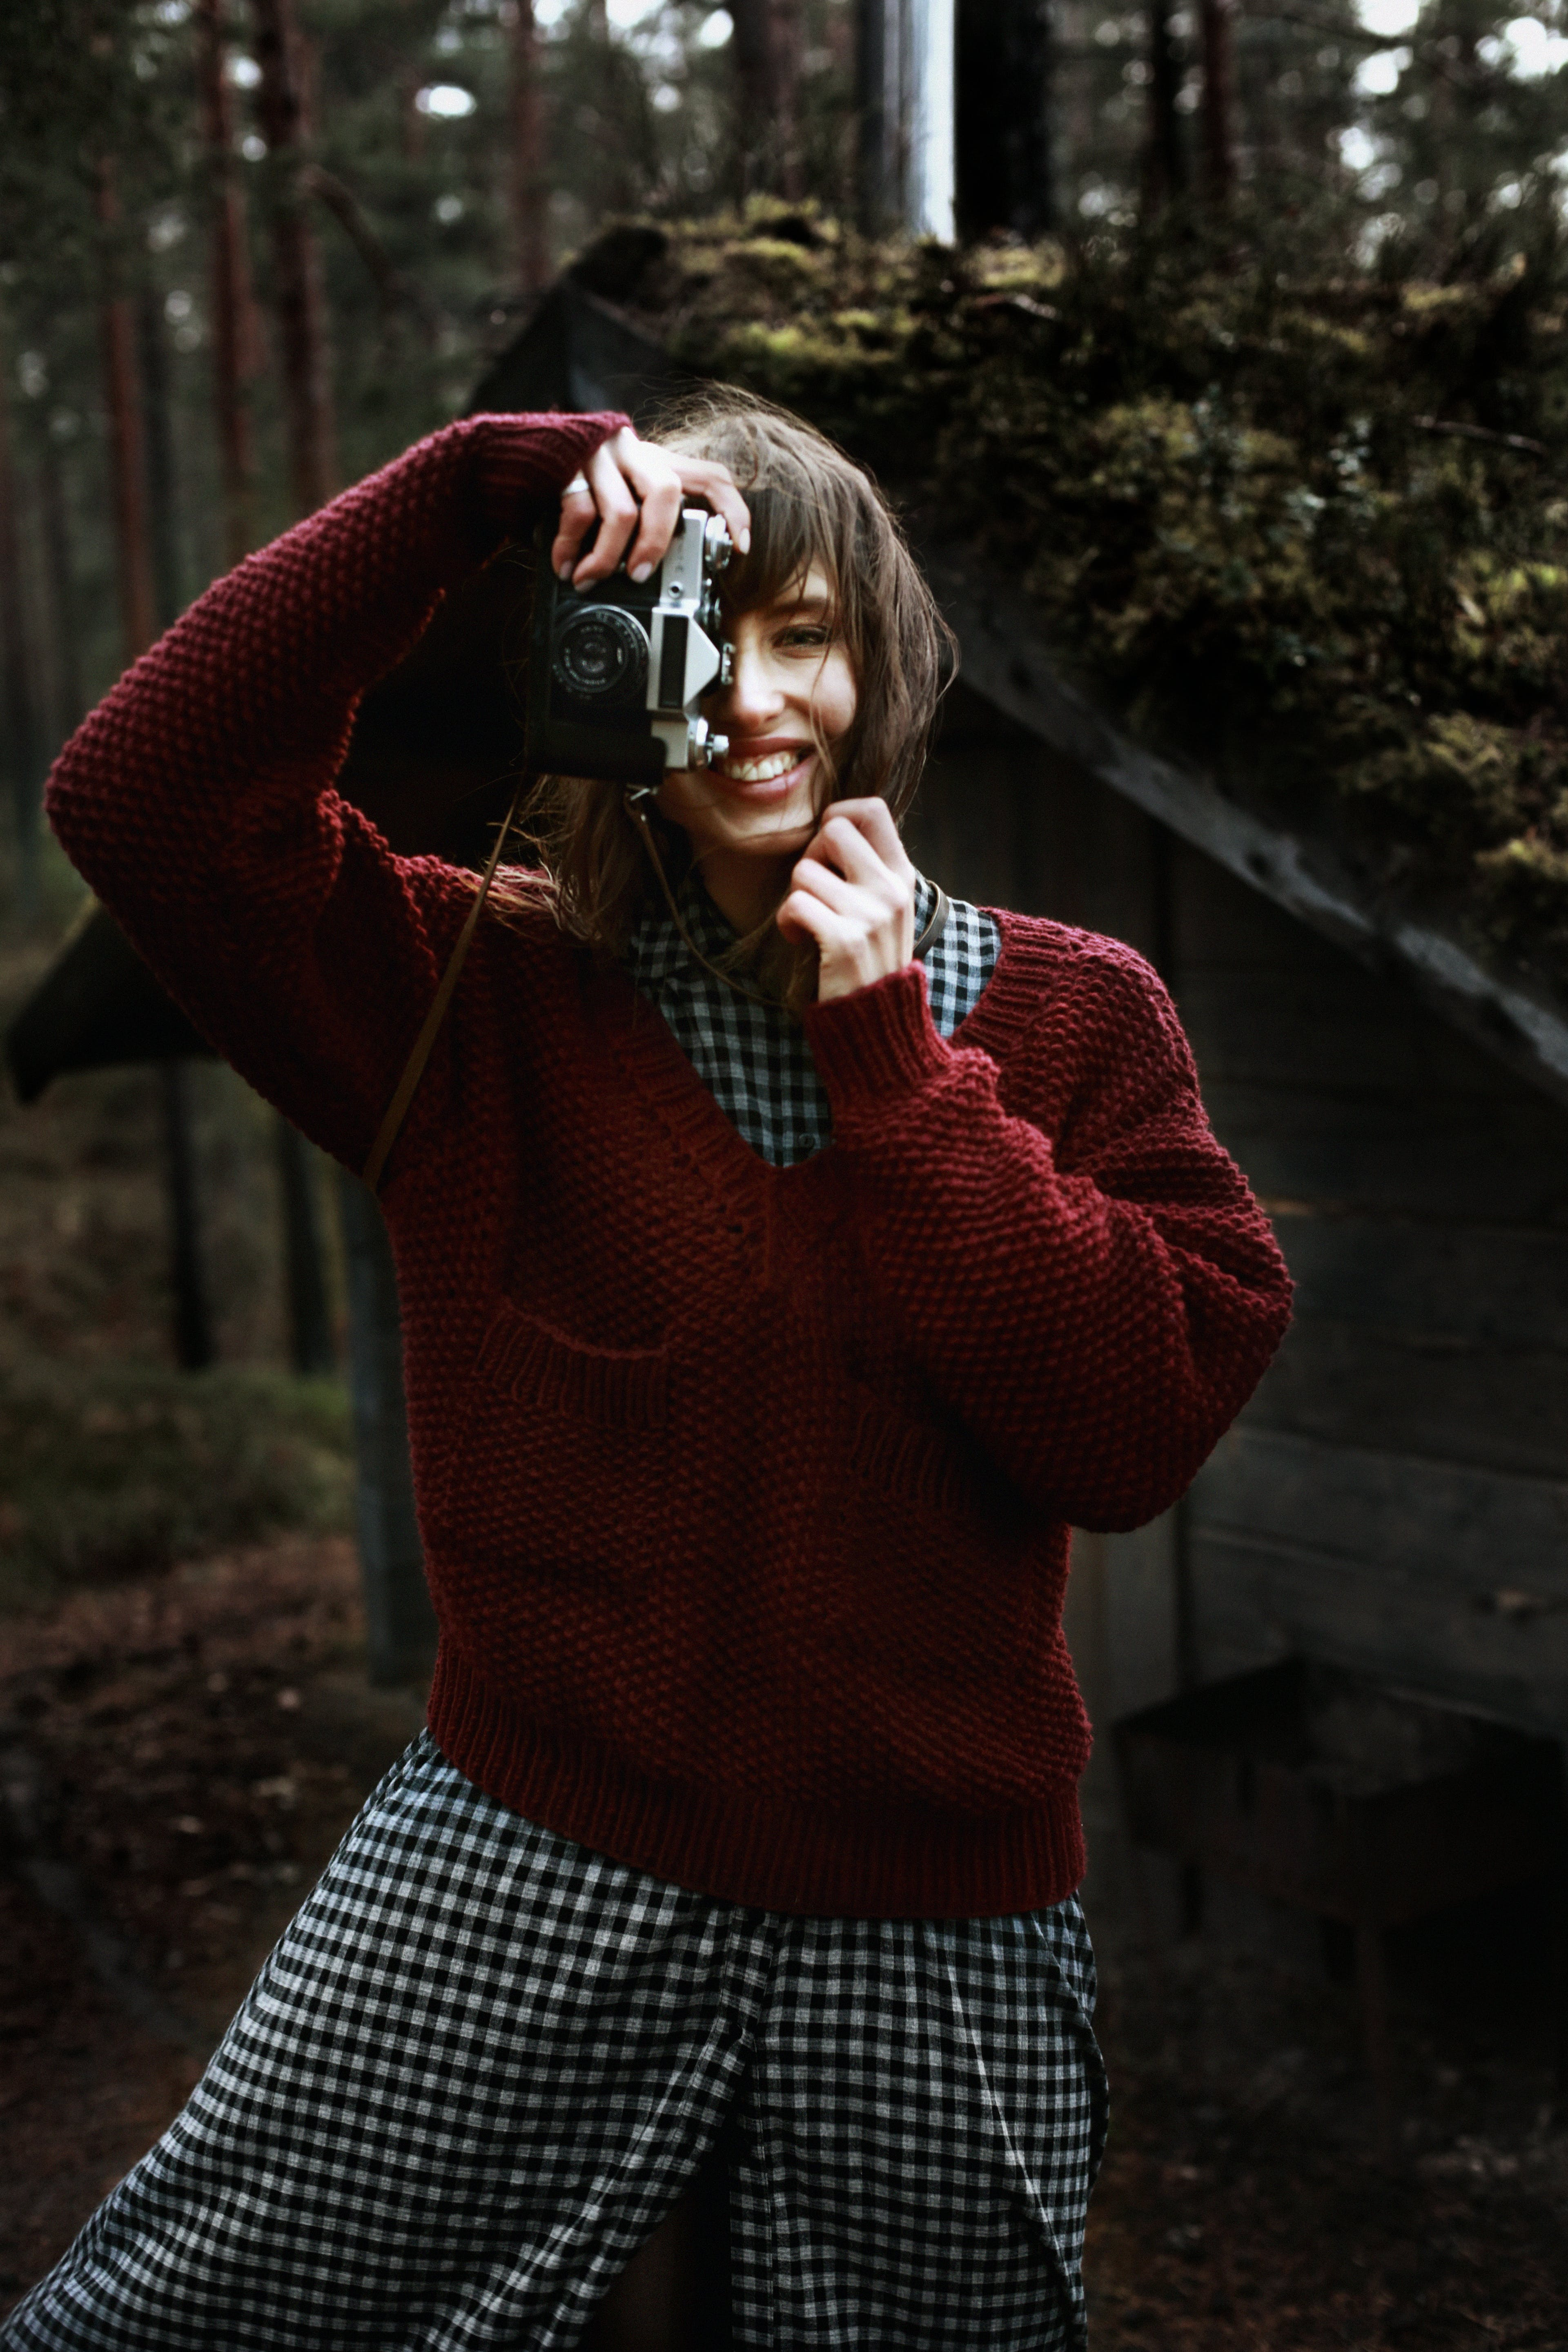 Smiling Woman Wearing Red Sweater Holding Camera